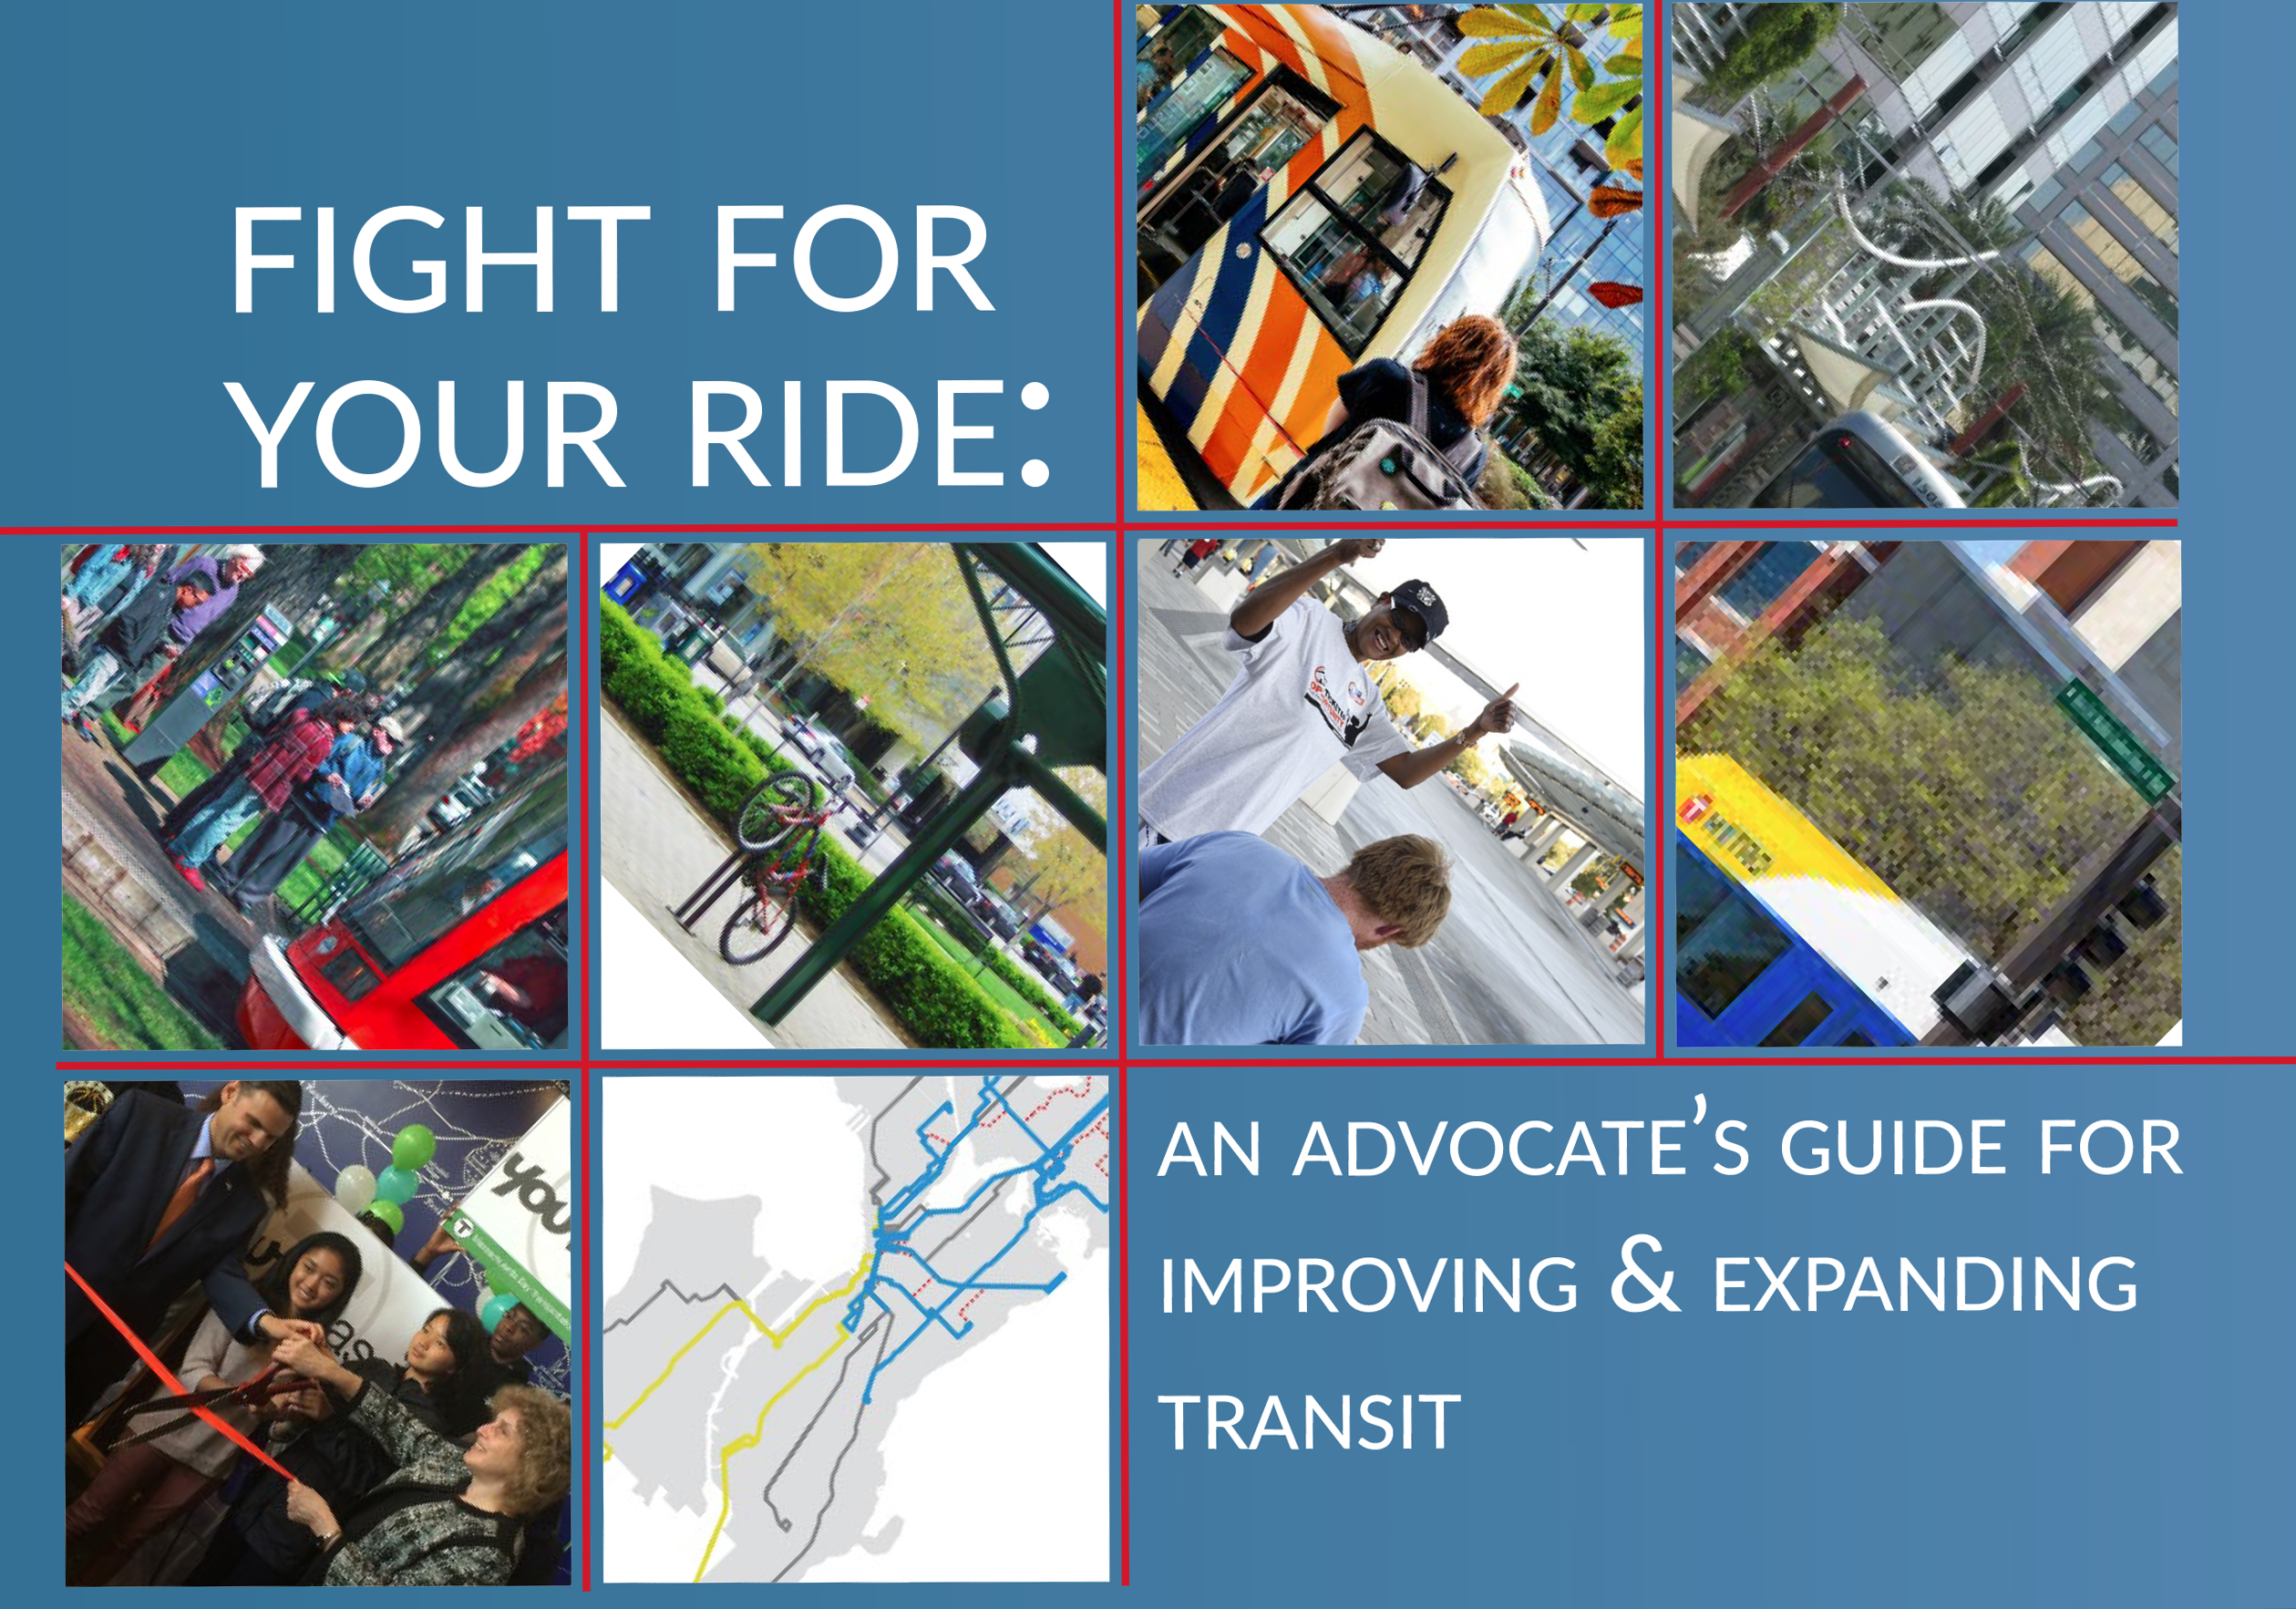 Fight for your ride: An advocate's guide for expanding and improving transit